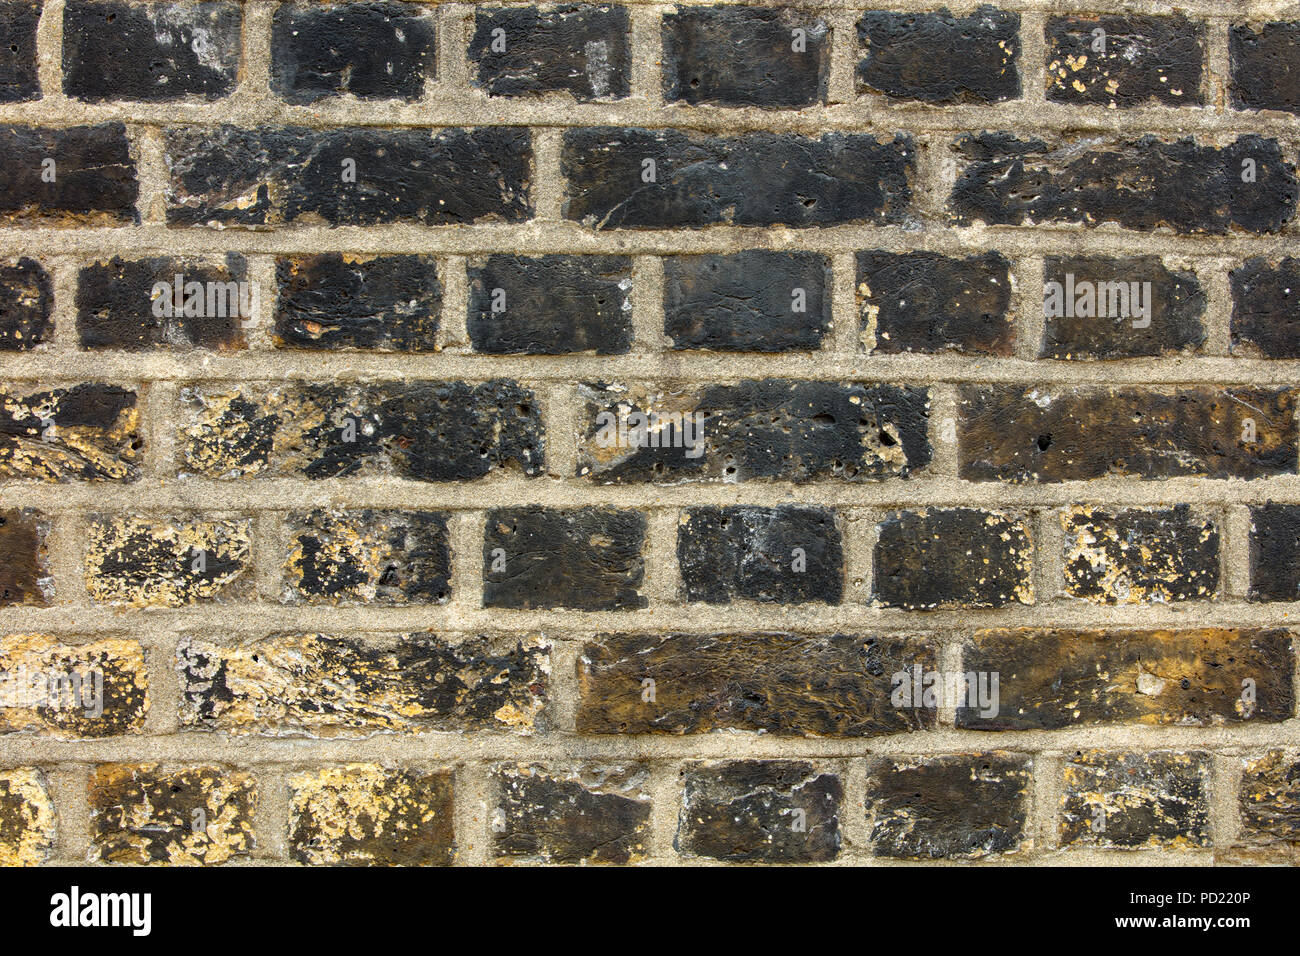 Heritage free standing wall in Hampstead, London, with old London weathered yellow bricks in English bond - Stock Image